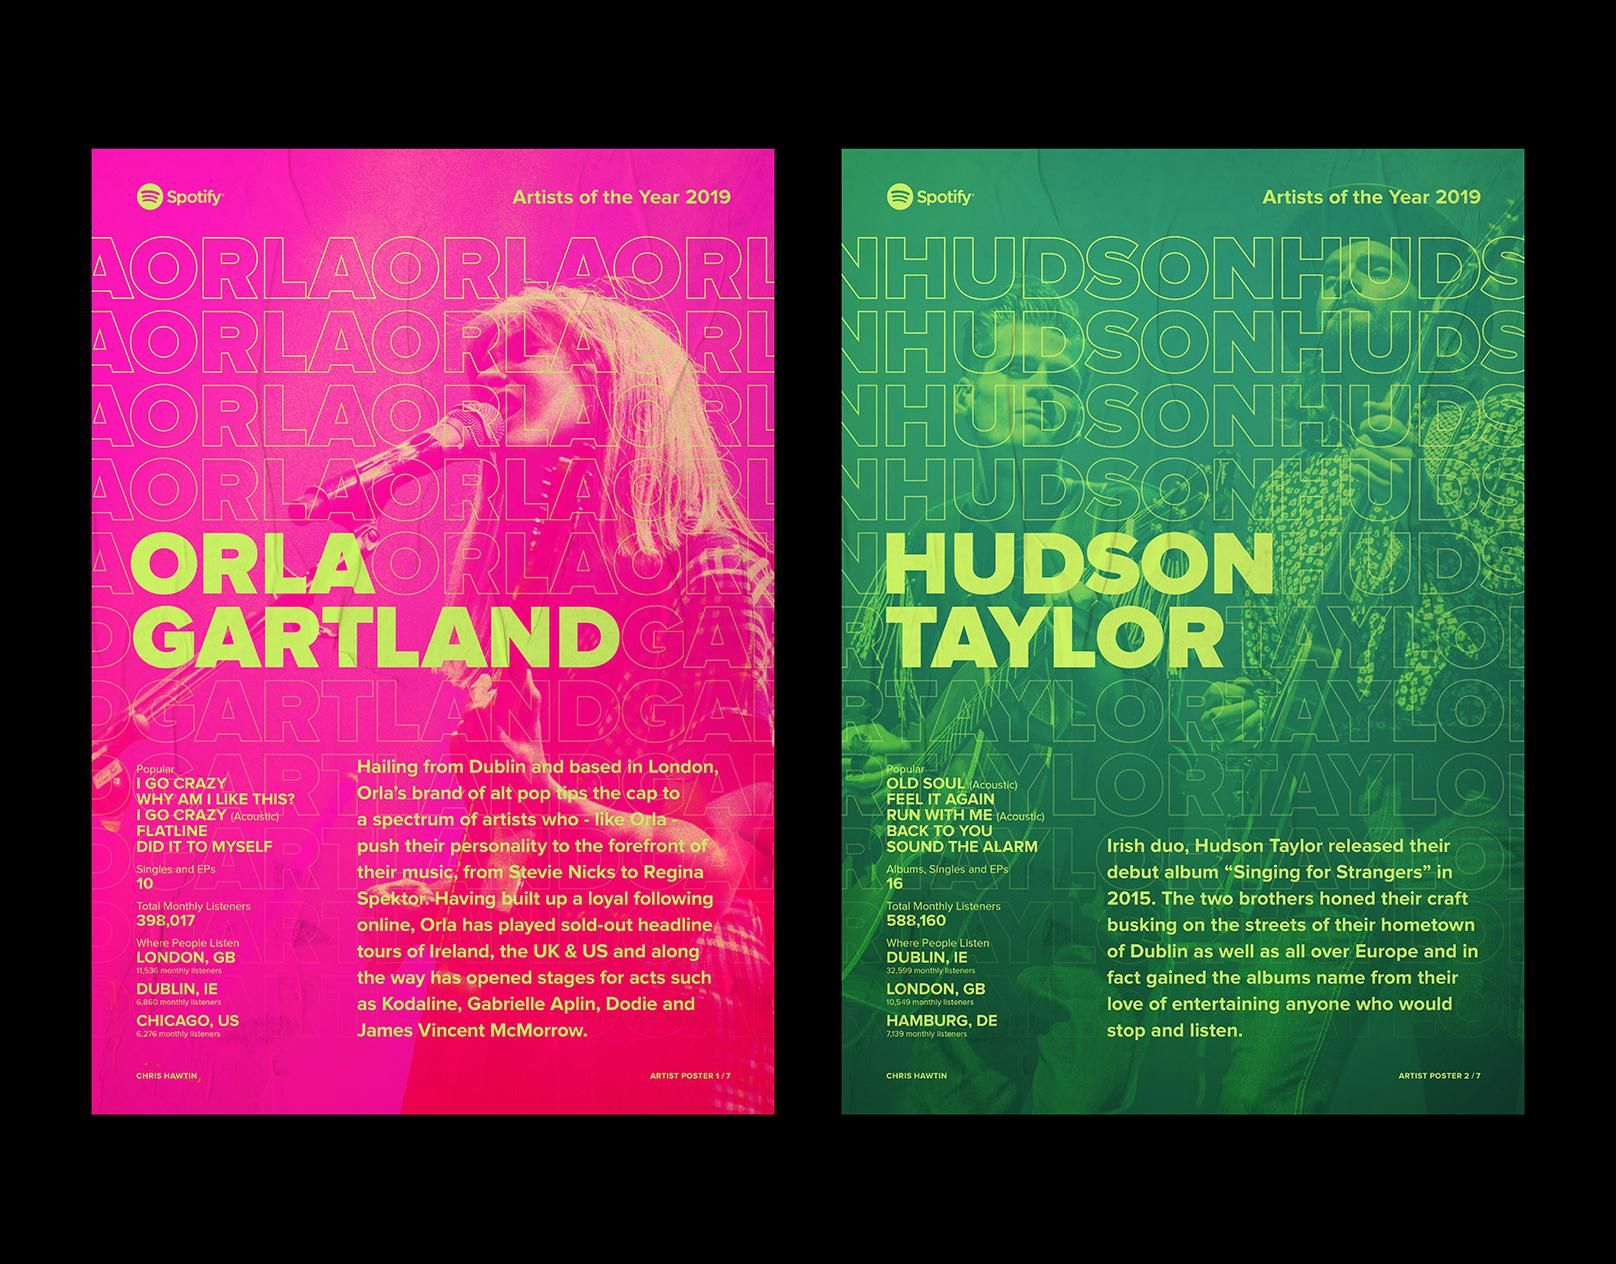 I Made These Posters To Celebrate Some Of My Favourite Music Artists Of 2019 In The Style Of The Spotify 2019 Wrapped C In 2020 Spotify Poster Series My Favorite Music